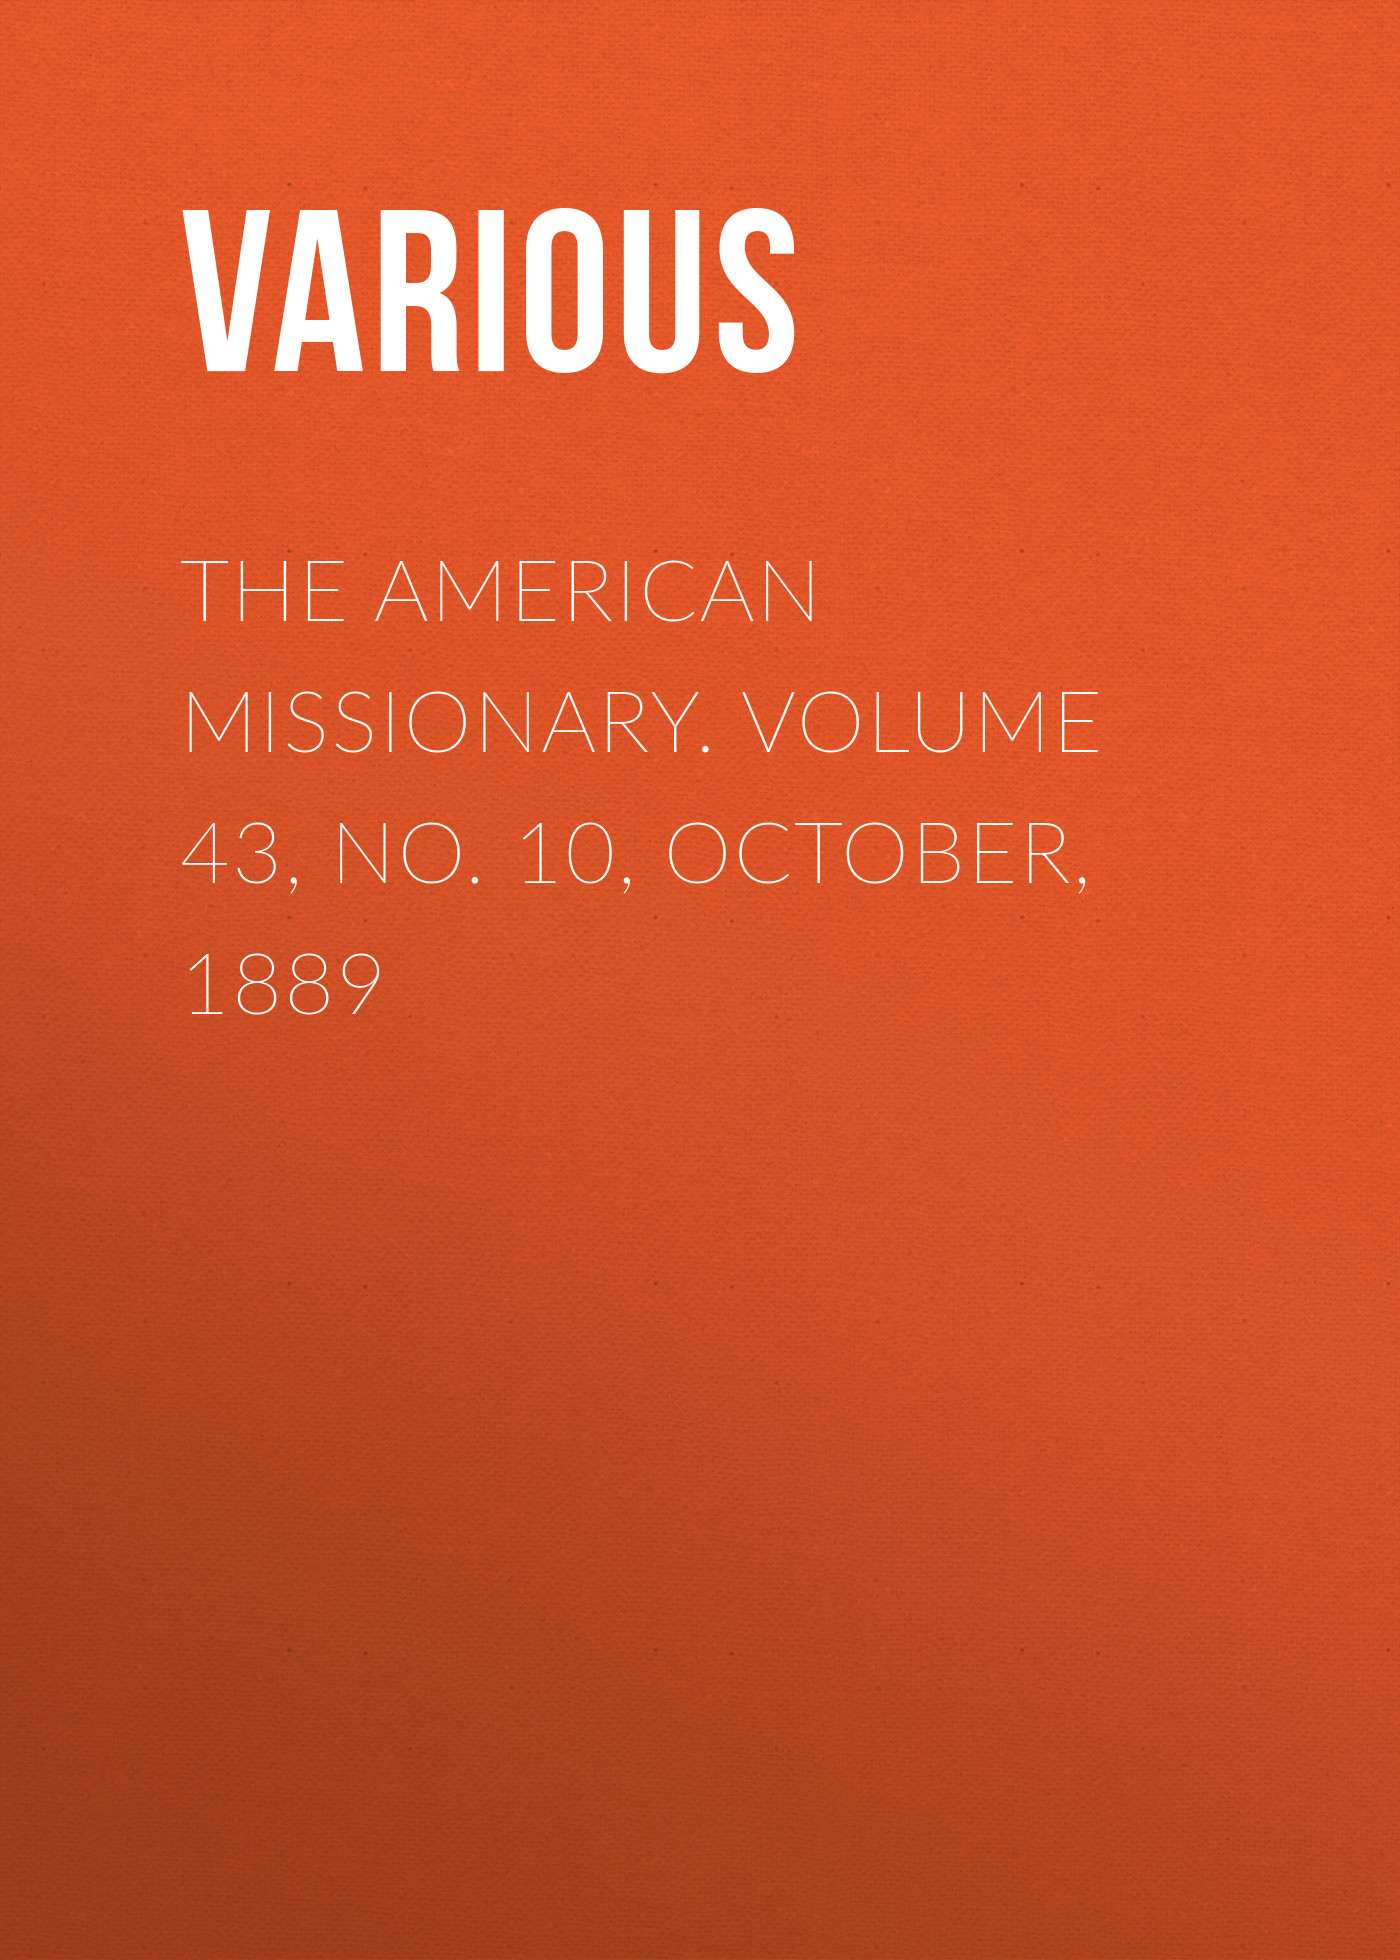 Various The American Missionary. Volume 43, No. 10, October, 1889